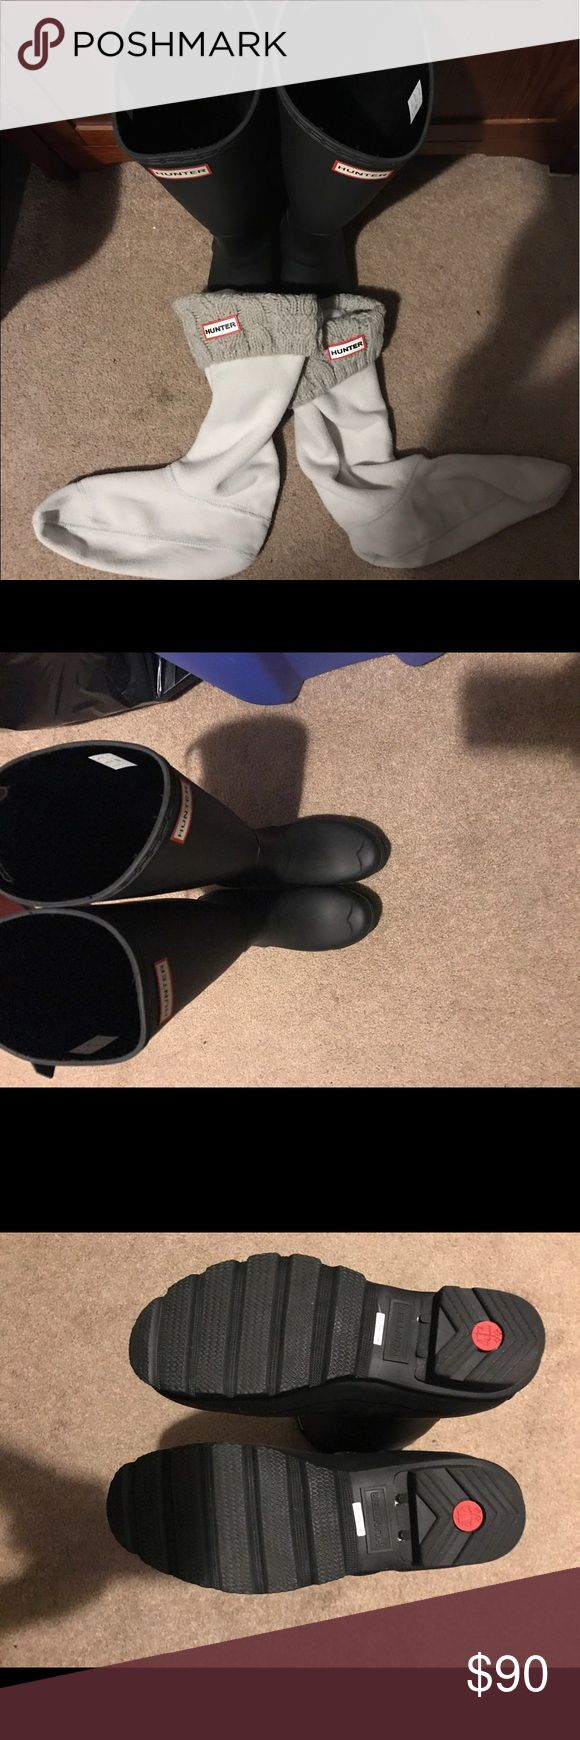 NWOT MATTE FINISH TALL HUNTER RAIN BOOTS Beautiful & brand new Hunter rain boots. I'm also including a pair of hunter boot liner also brand new. They are great for running errands or going out. I got them as a gift & already have a pair. Great bargain Hunter Boots Shoes Winter & Rain Boots